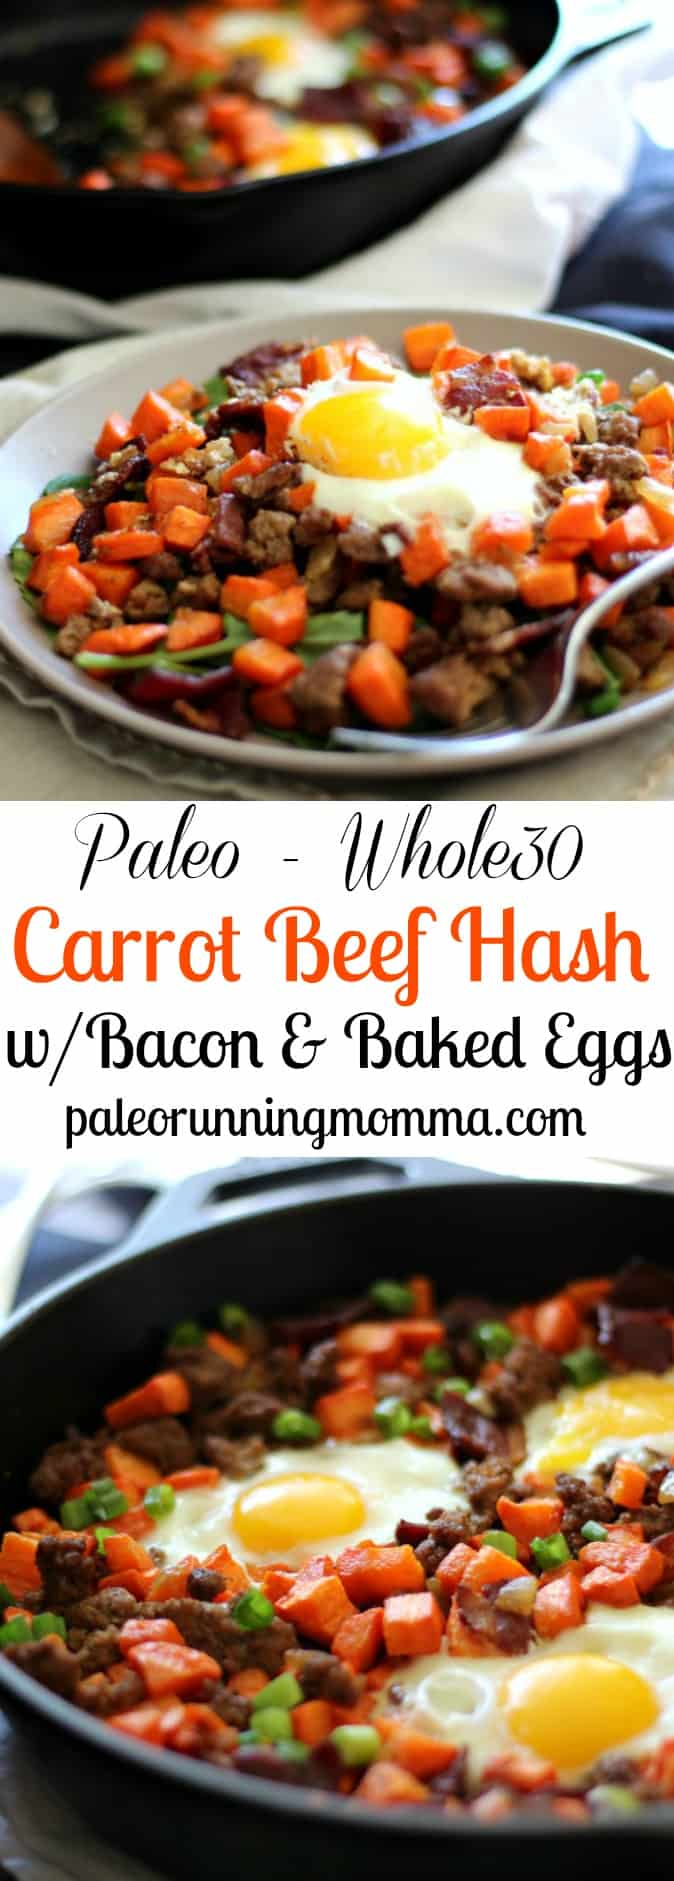 Paleo and Whole30 Roasted Carrot Hash with ground beef and bacon plus baked eggs. Low carb, grain free, dairy free, whole30 and sugar detox friendly!